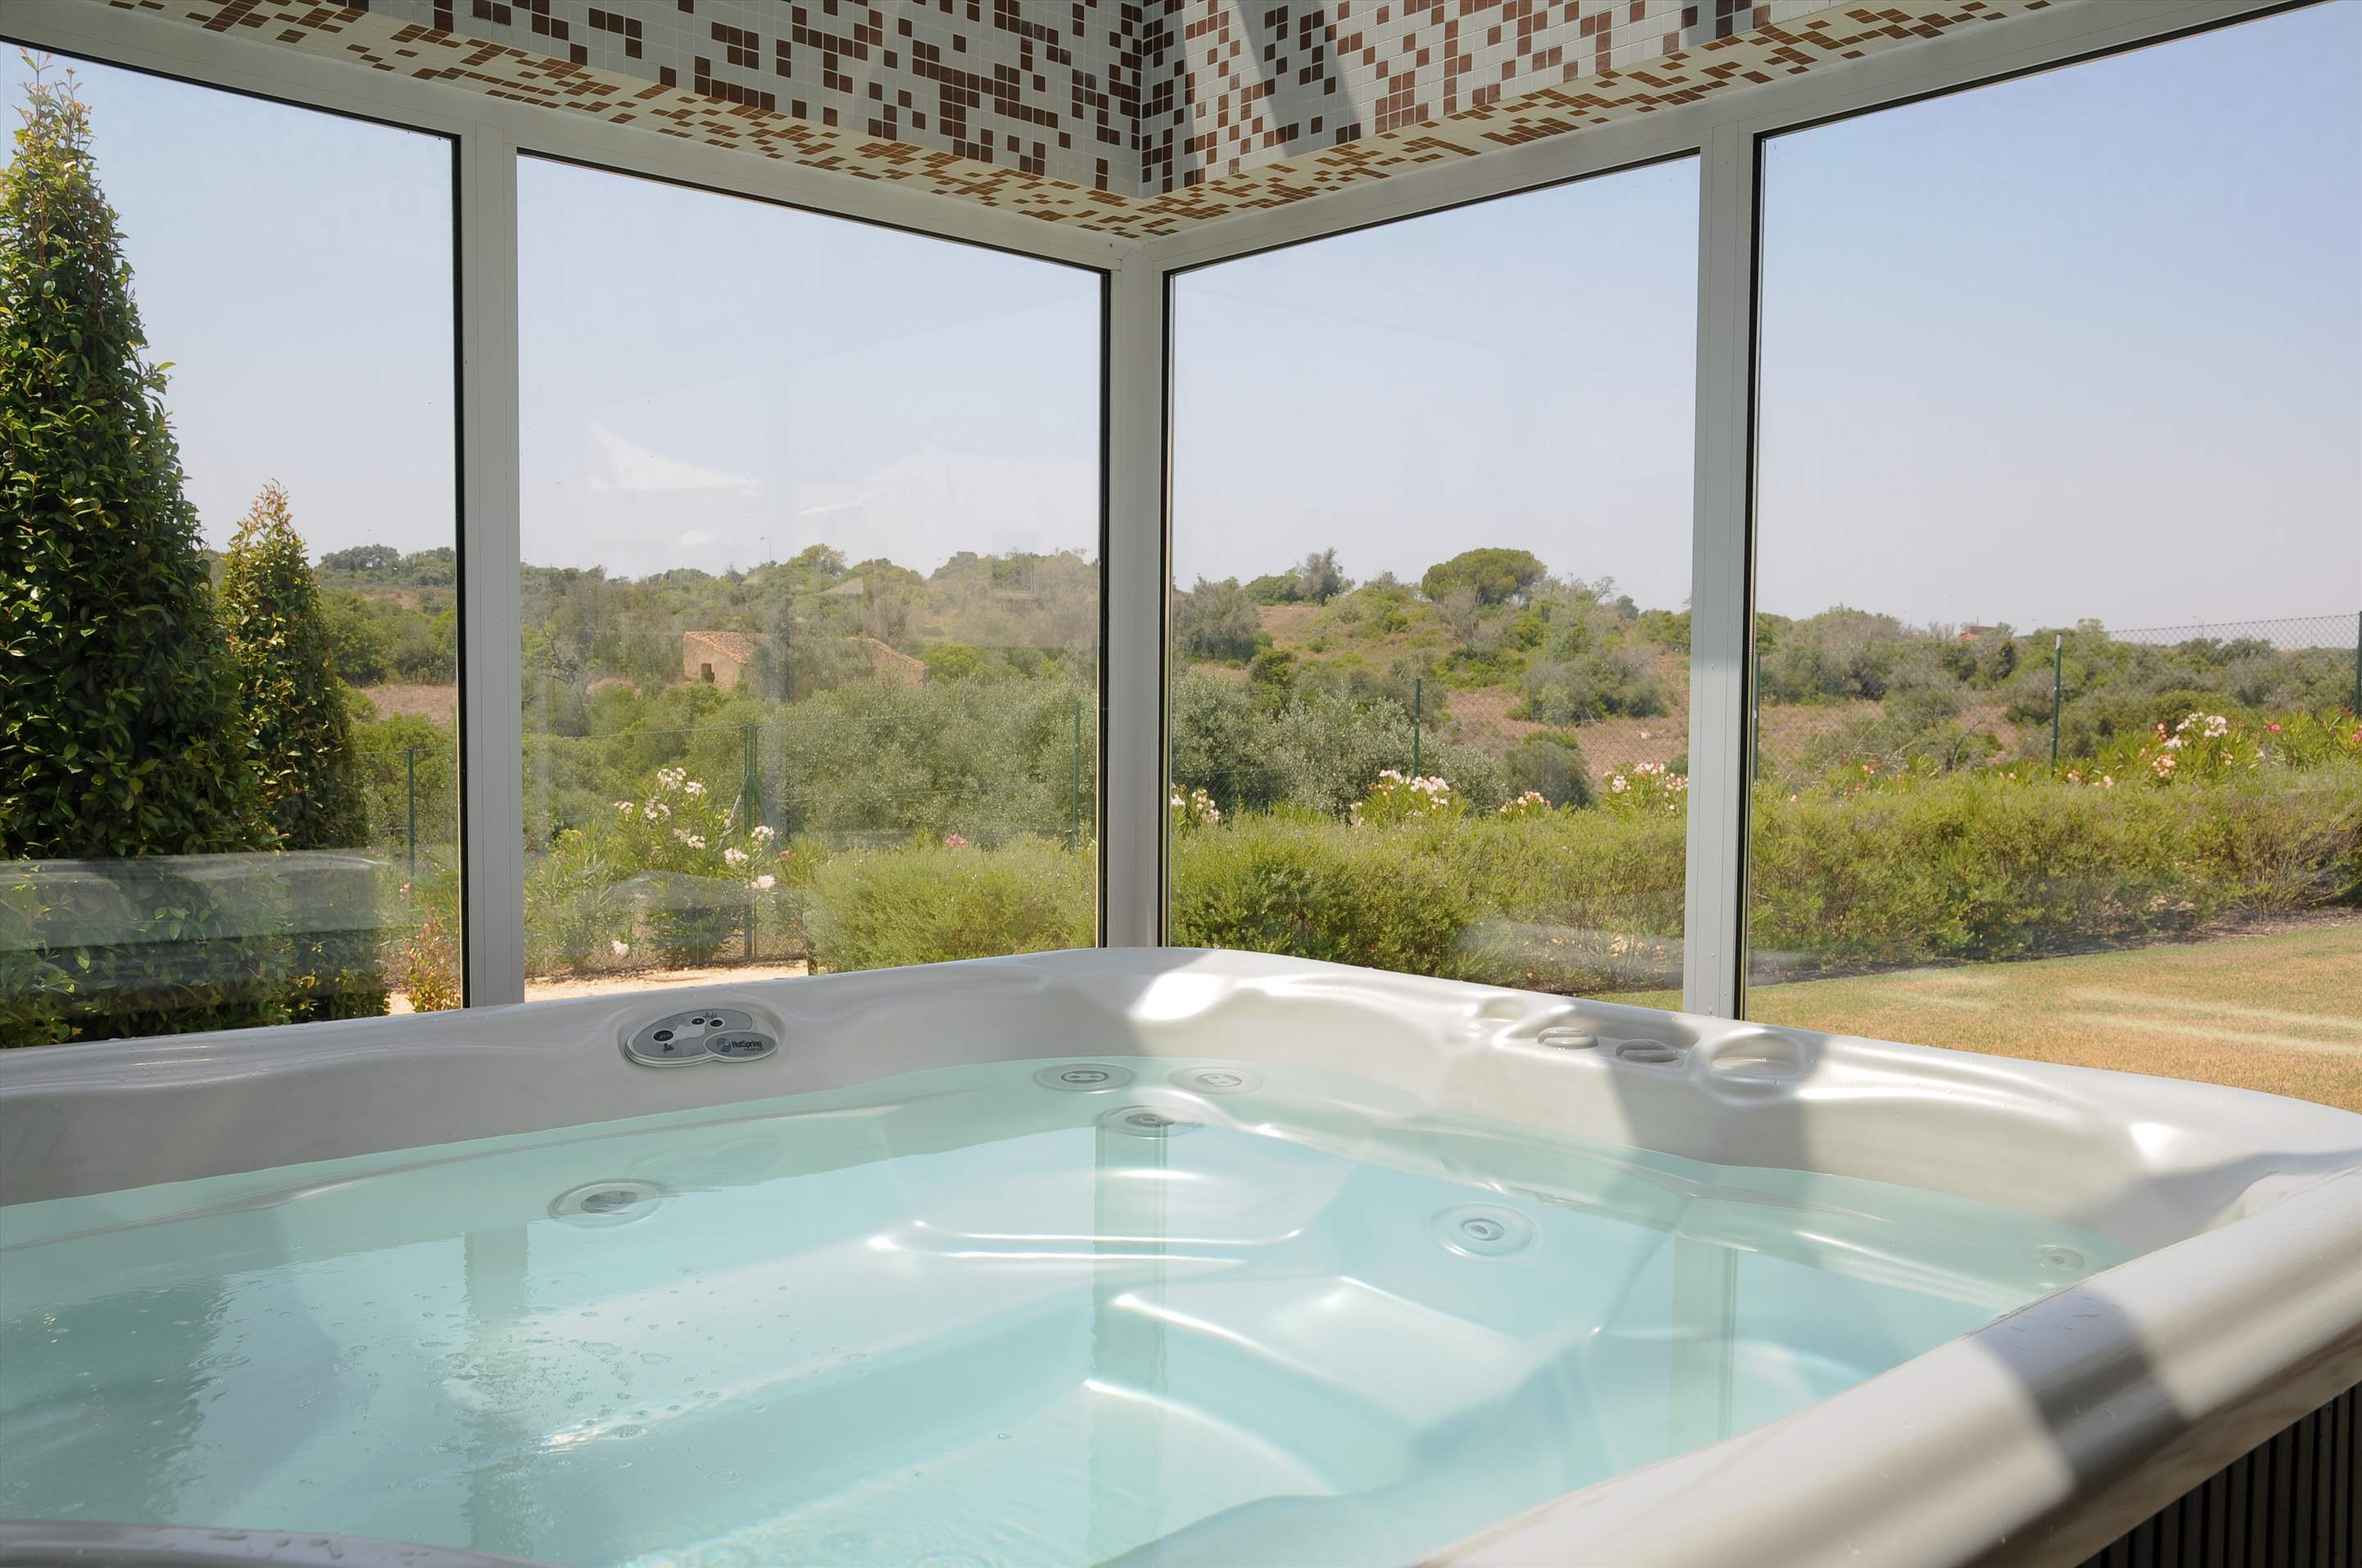 Vale d'Oliveiras 1 Bed Suite Garden View , Self Catering, 1 bedroom apartment in Vale d'Oliveiras Resort & Spa, Algarve Photo #13